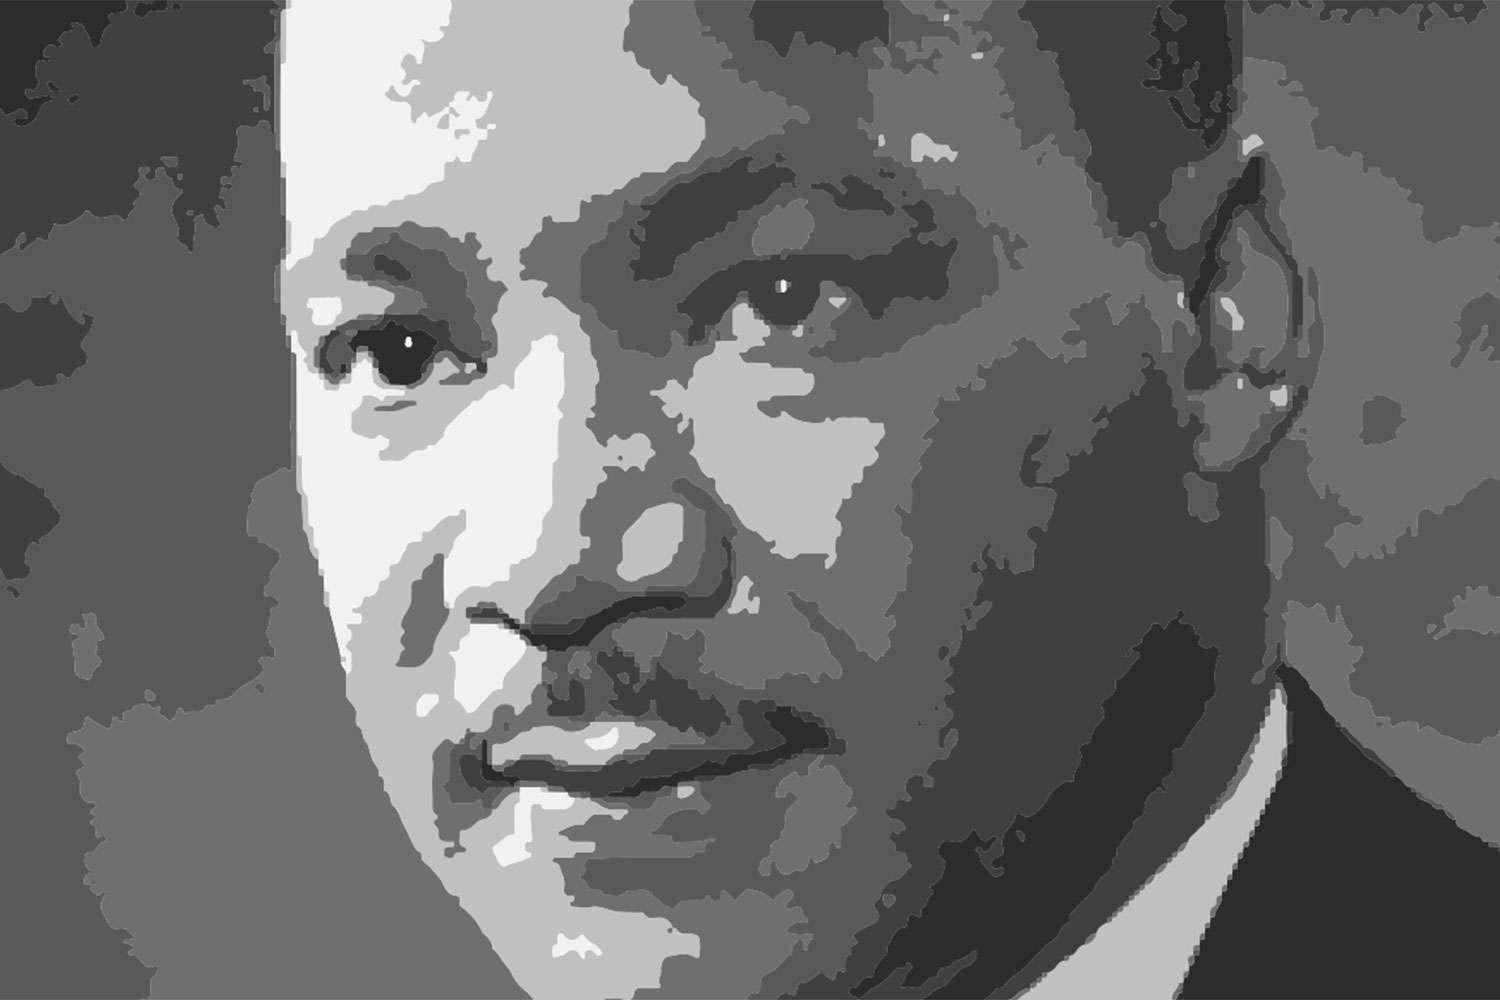 Martin luther King Jr. has been gone for 50 years, yet is message is as important today as ever.